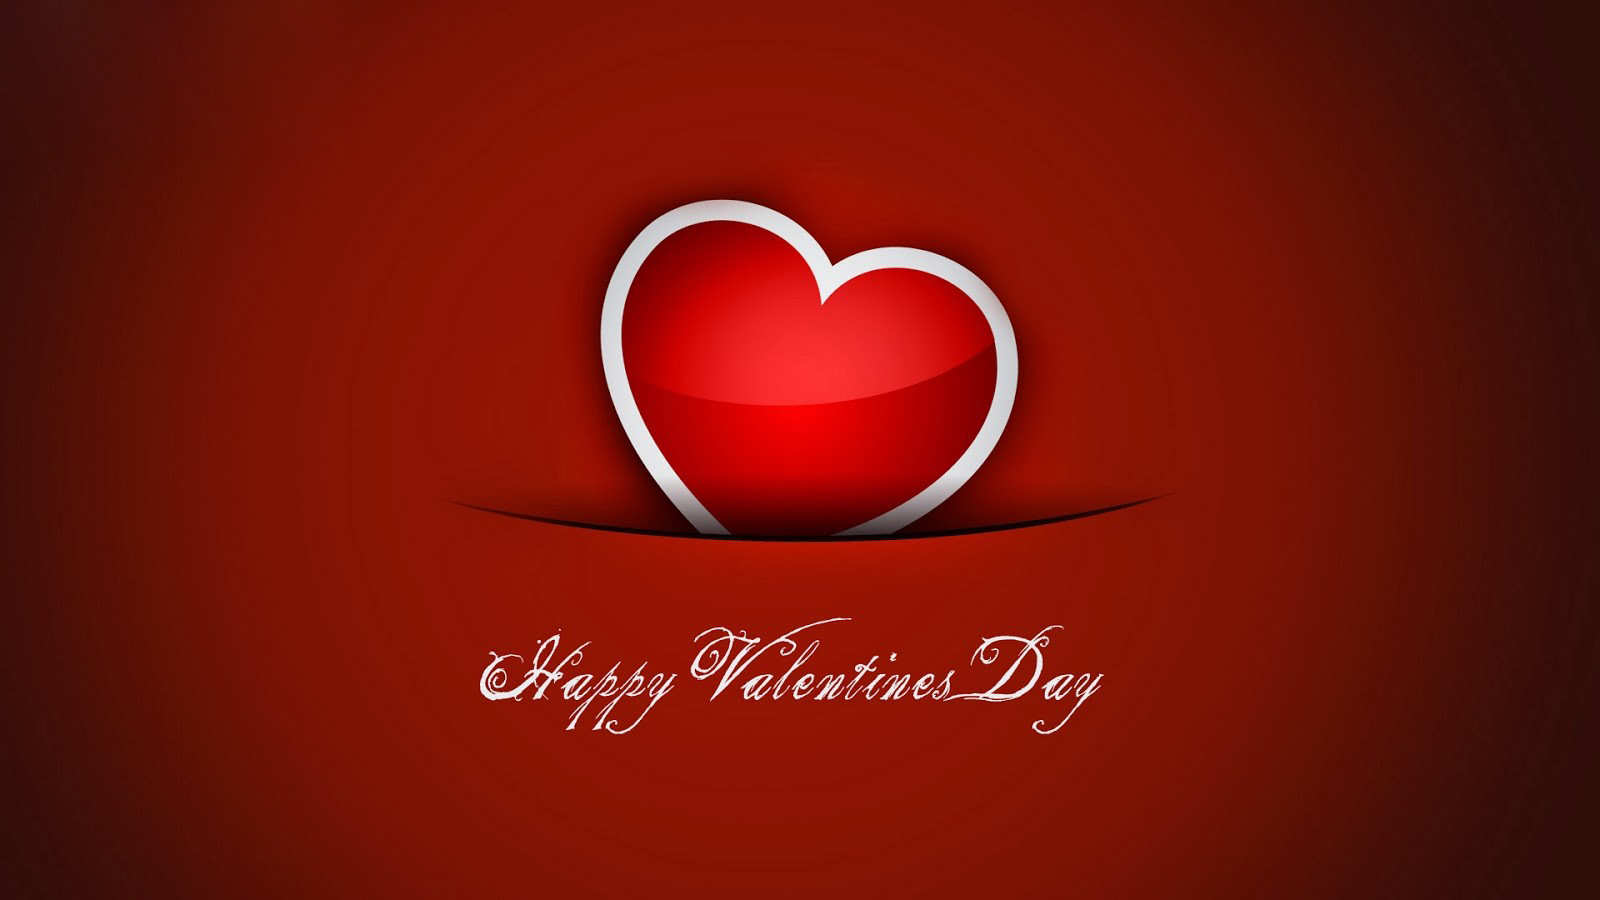 4k new red heart beautiful valentines day lovers day wallpaper